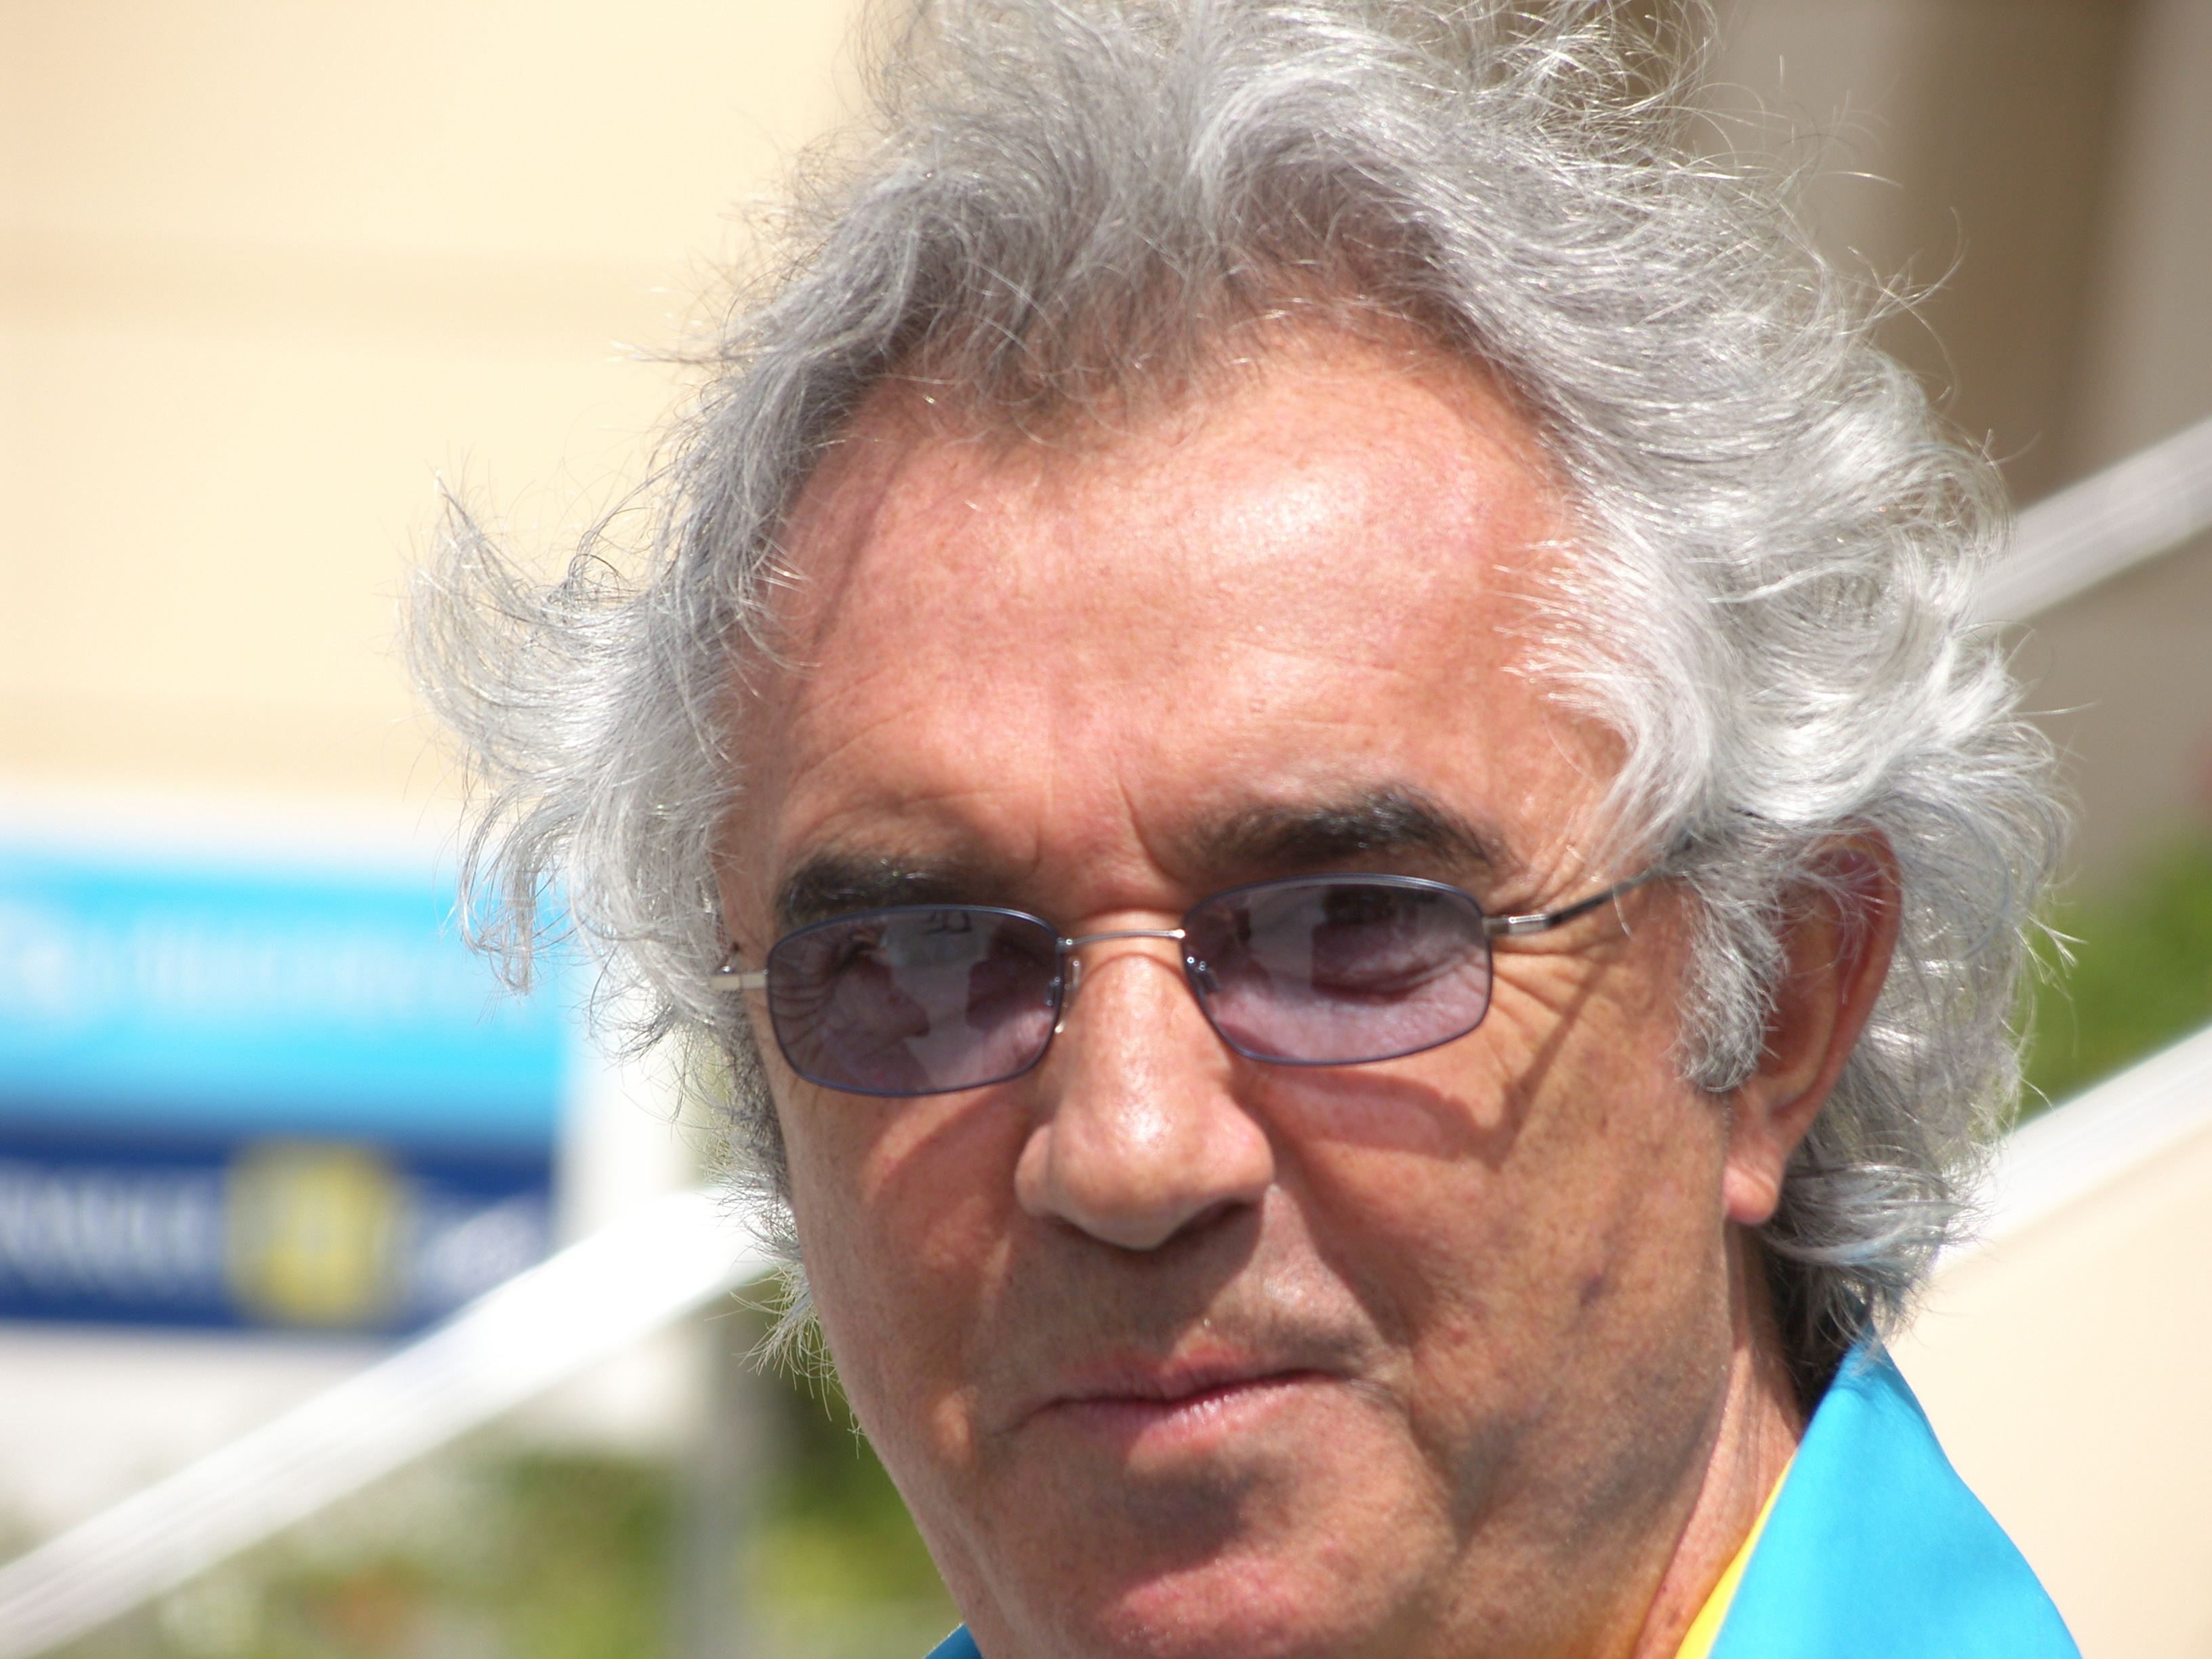 https://i2.wp.com/upload.wikimedia.org/wikipedia/commons/8/8a/Flavio_Briatore.JPG